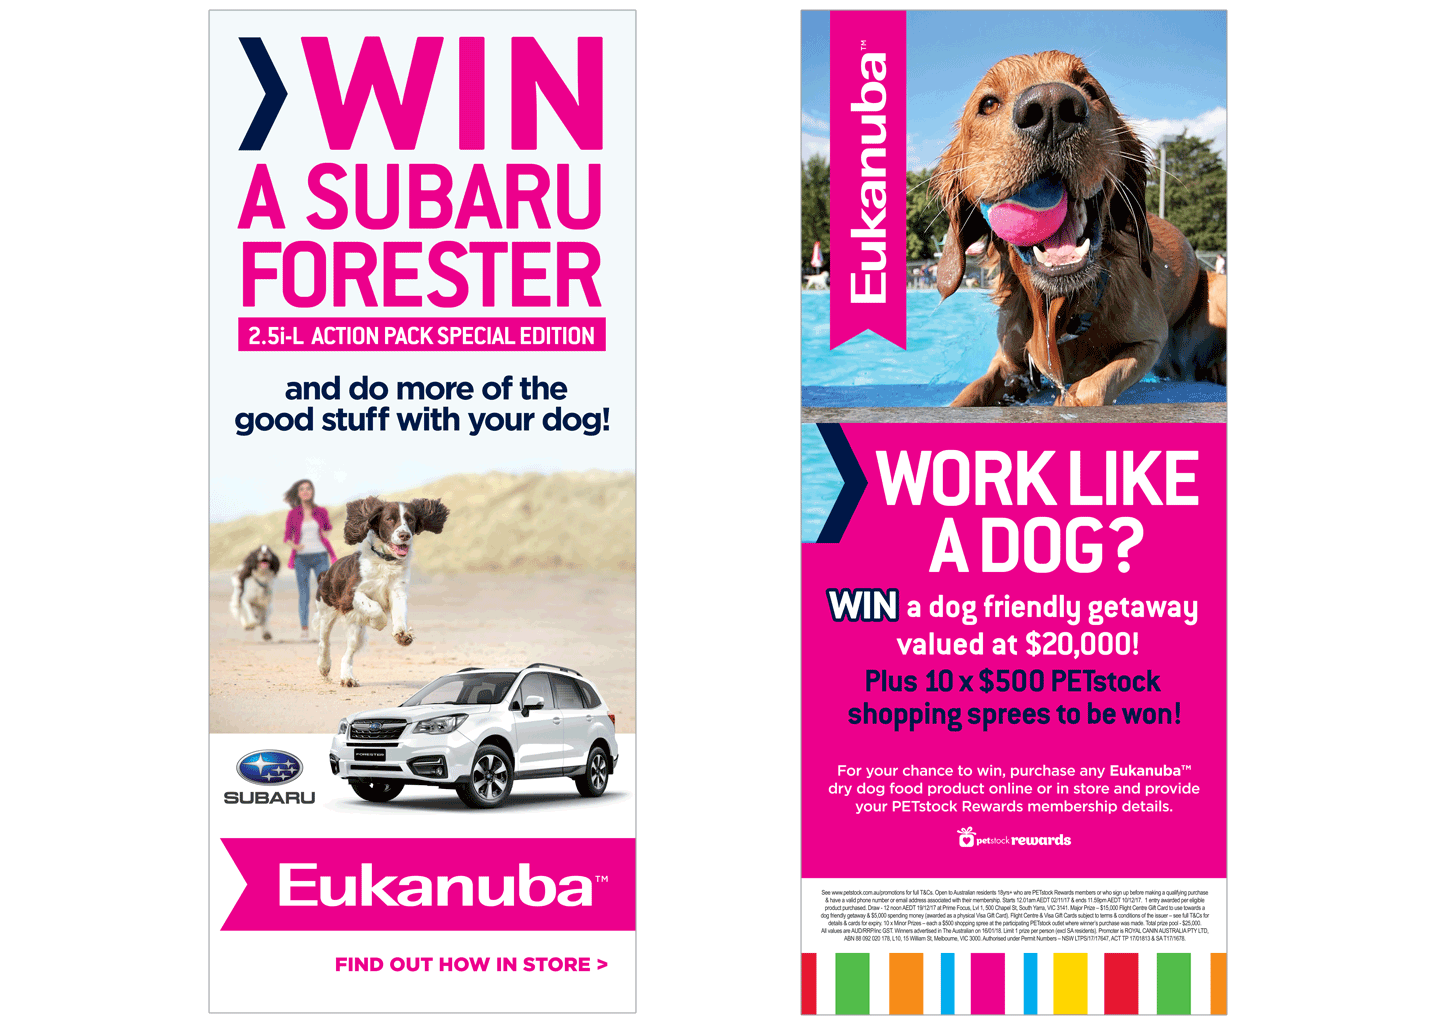 Eukanuba pull up banners